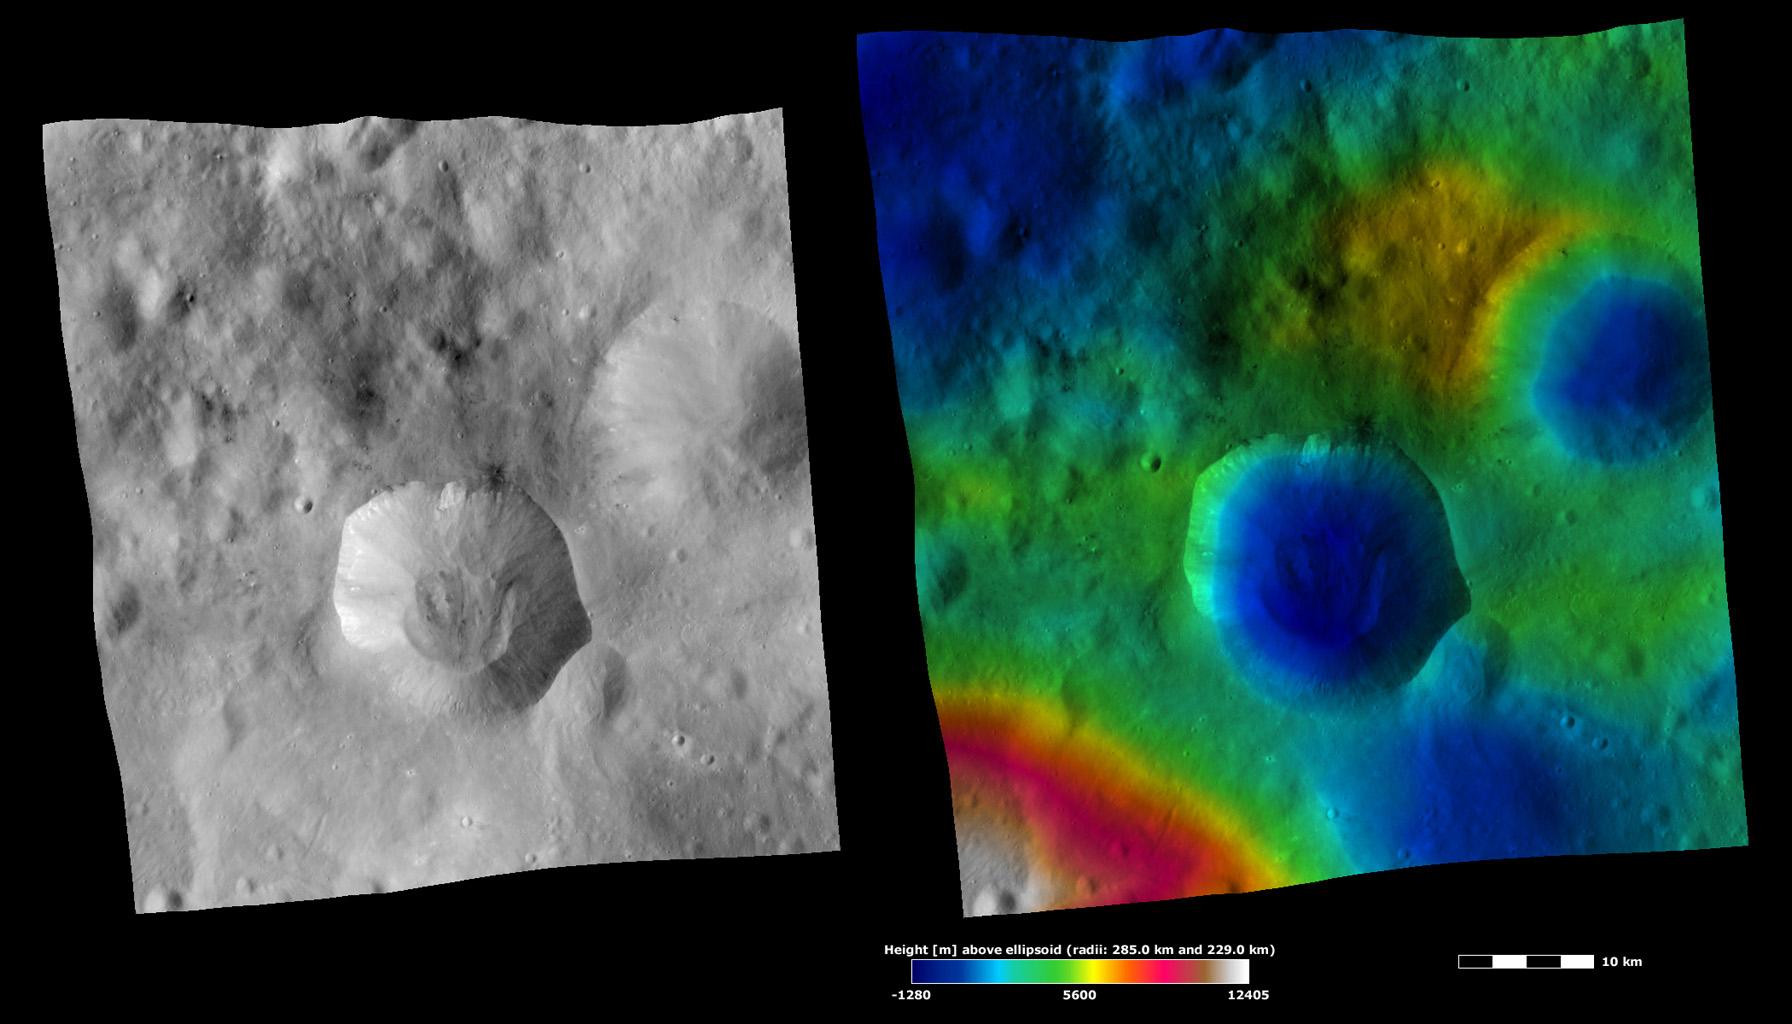 Apparent Brightness and Topography Images of Drusilla Crater